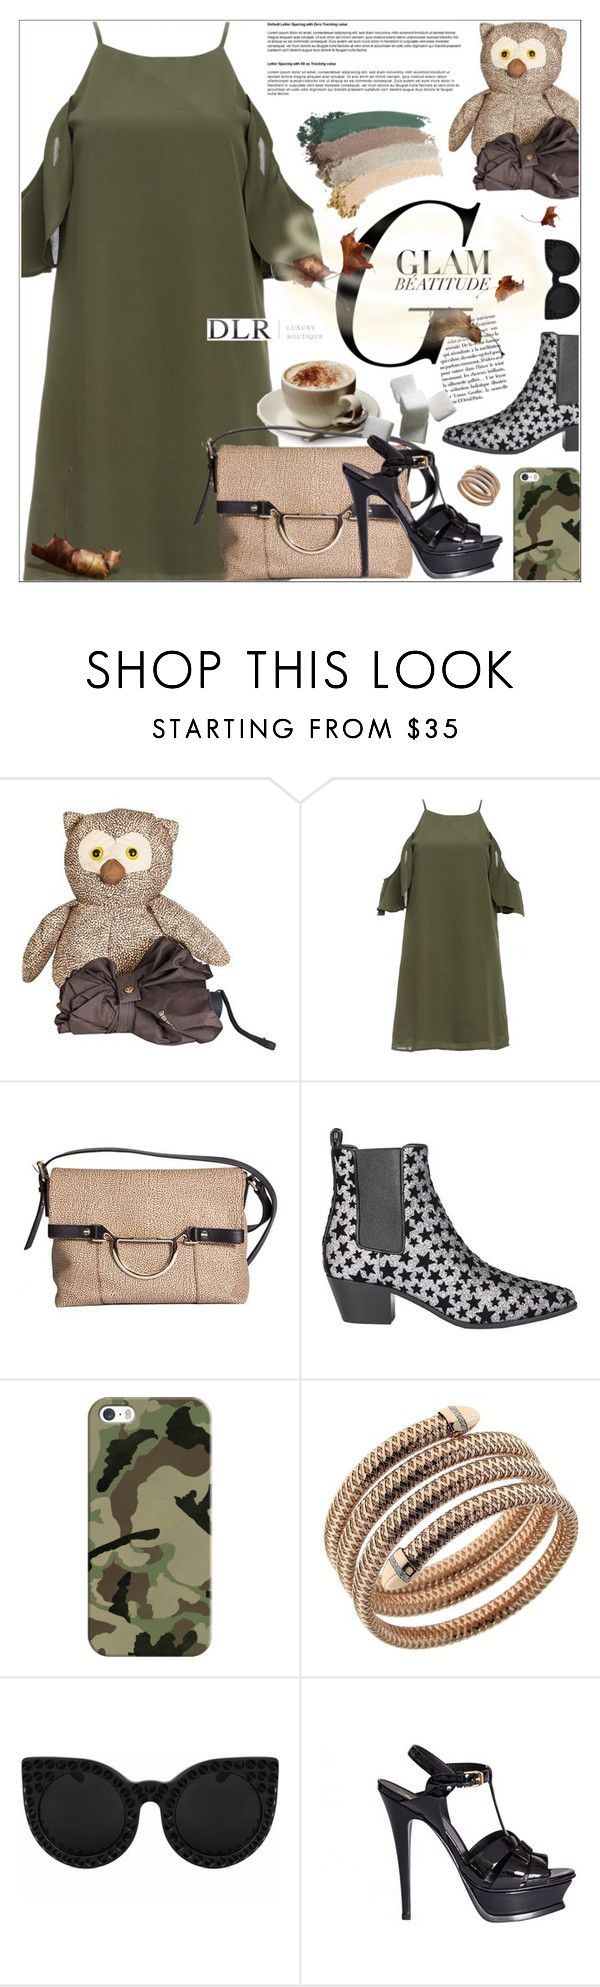 """""""DLRBOUTIQUE.COM"""" by mirachu-1 on Polyvore featuring Borbonese, DailyLook, Parra, Yves Saint Laurent, Casetify, Roberto Coin and Gucci"""